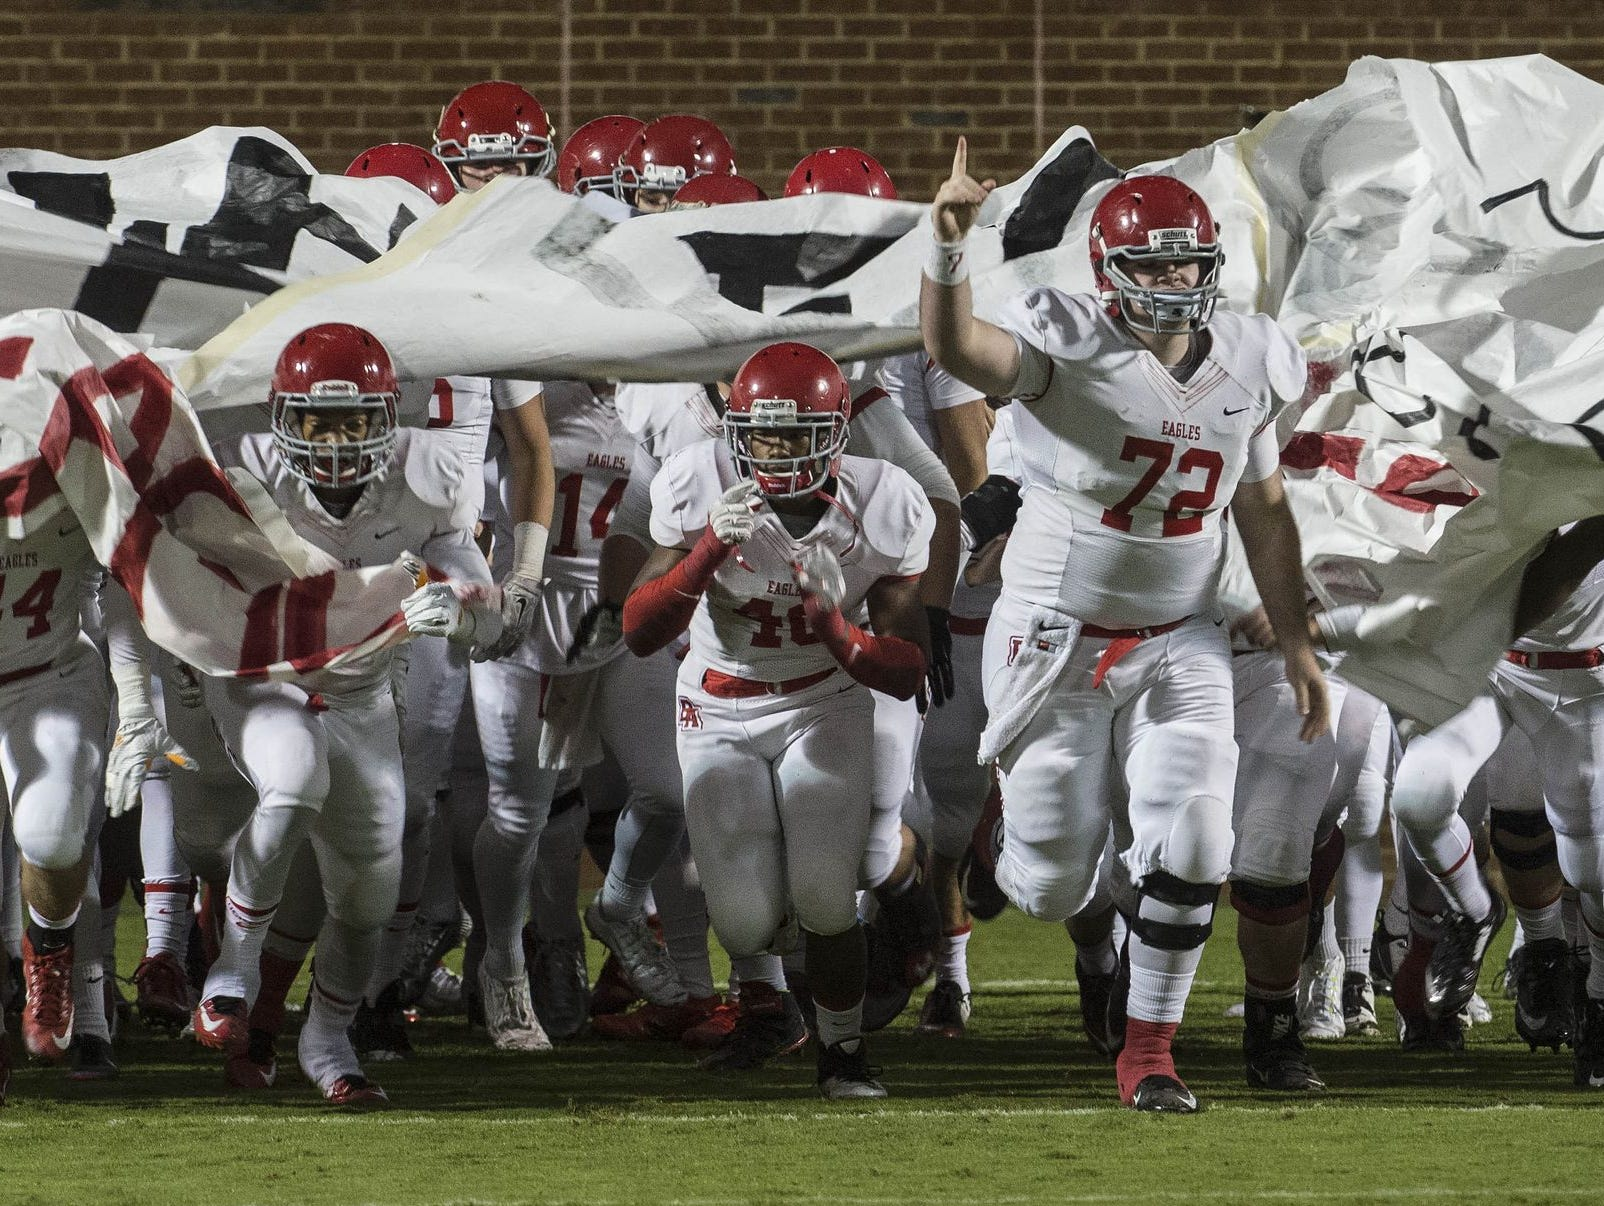 Brentwood Academy takes the field prior to last week's game at Ensworth.